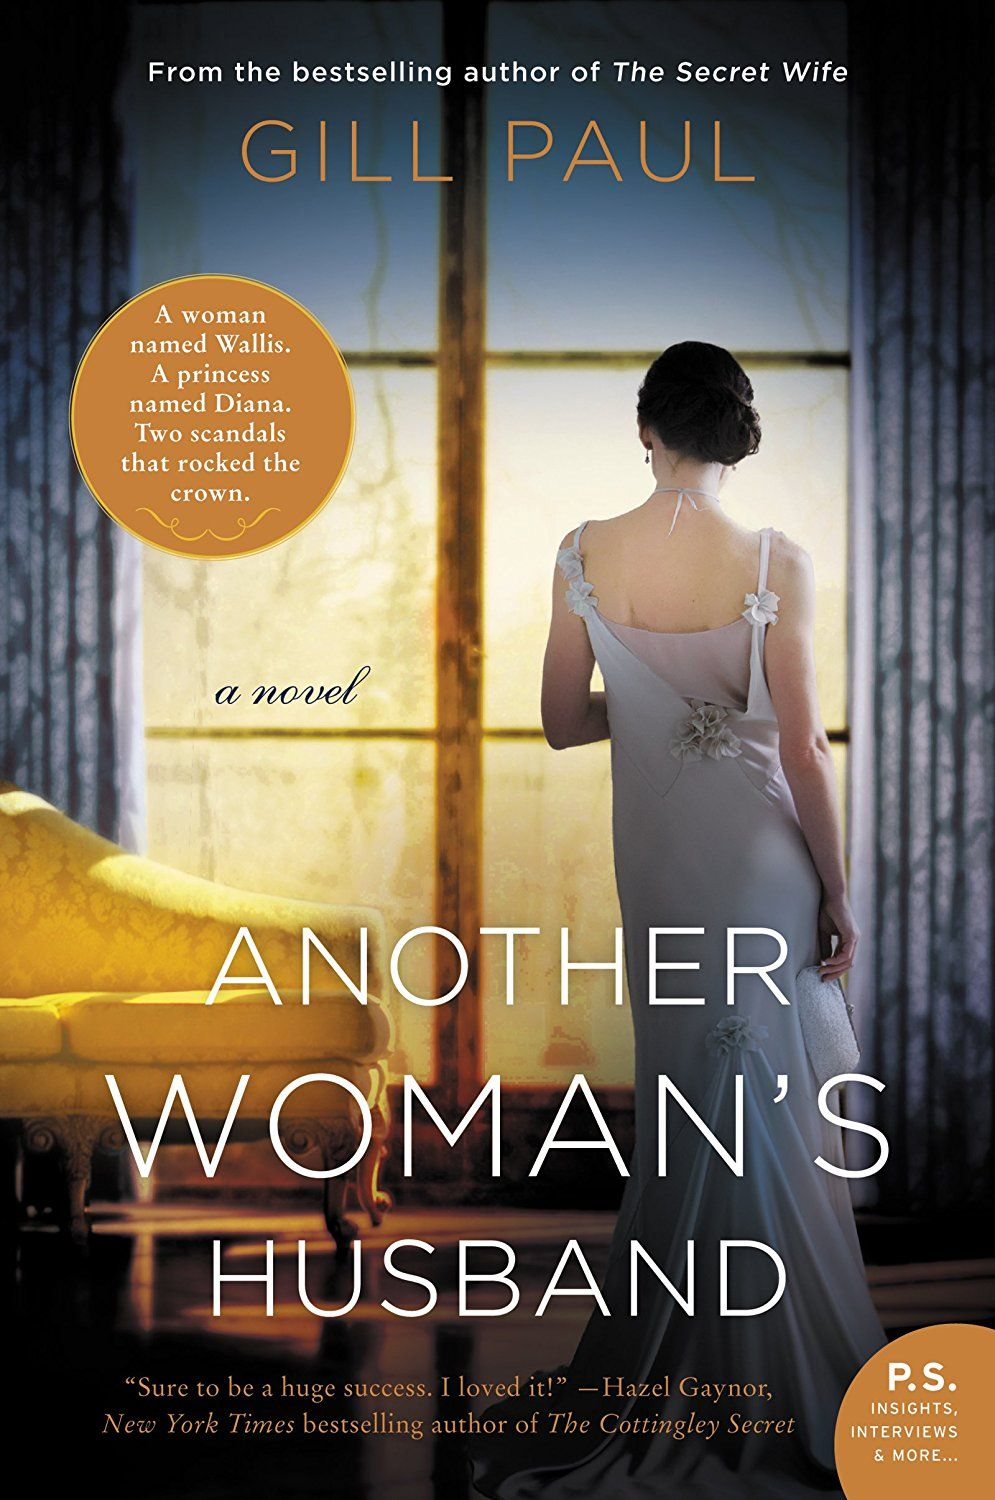 Another Woman S Husband A Novel Kindle Edition By Gill Paul Literature Fiction Kindle Ebooks Amazon Com Novels Books To Read Books